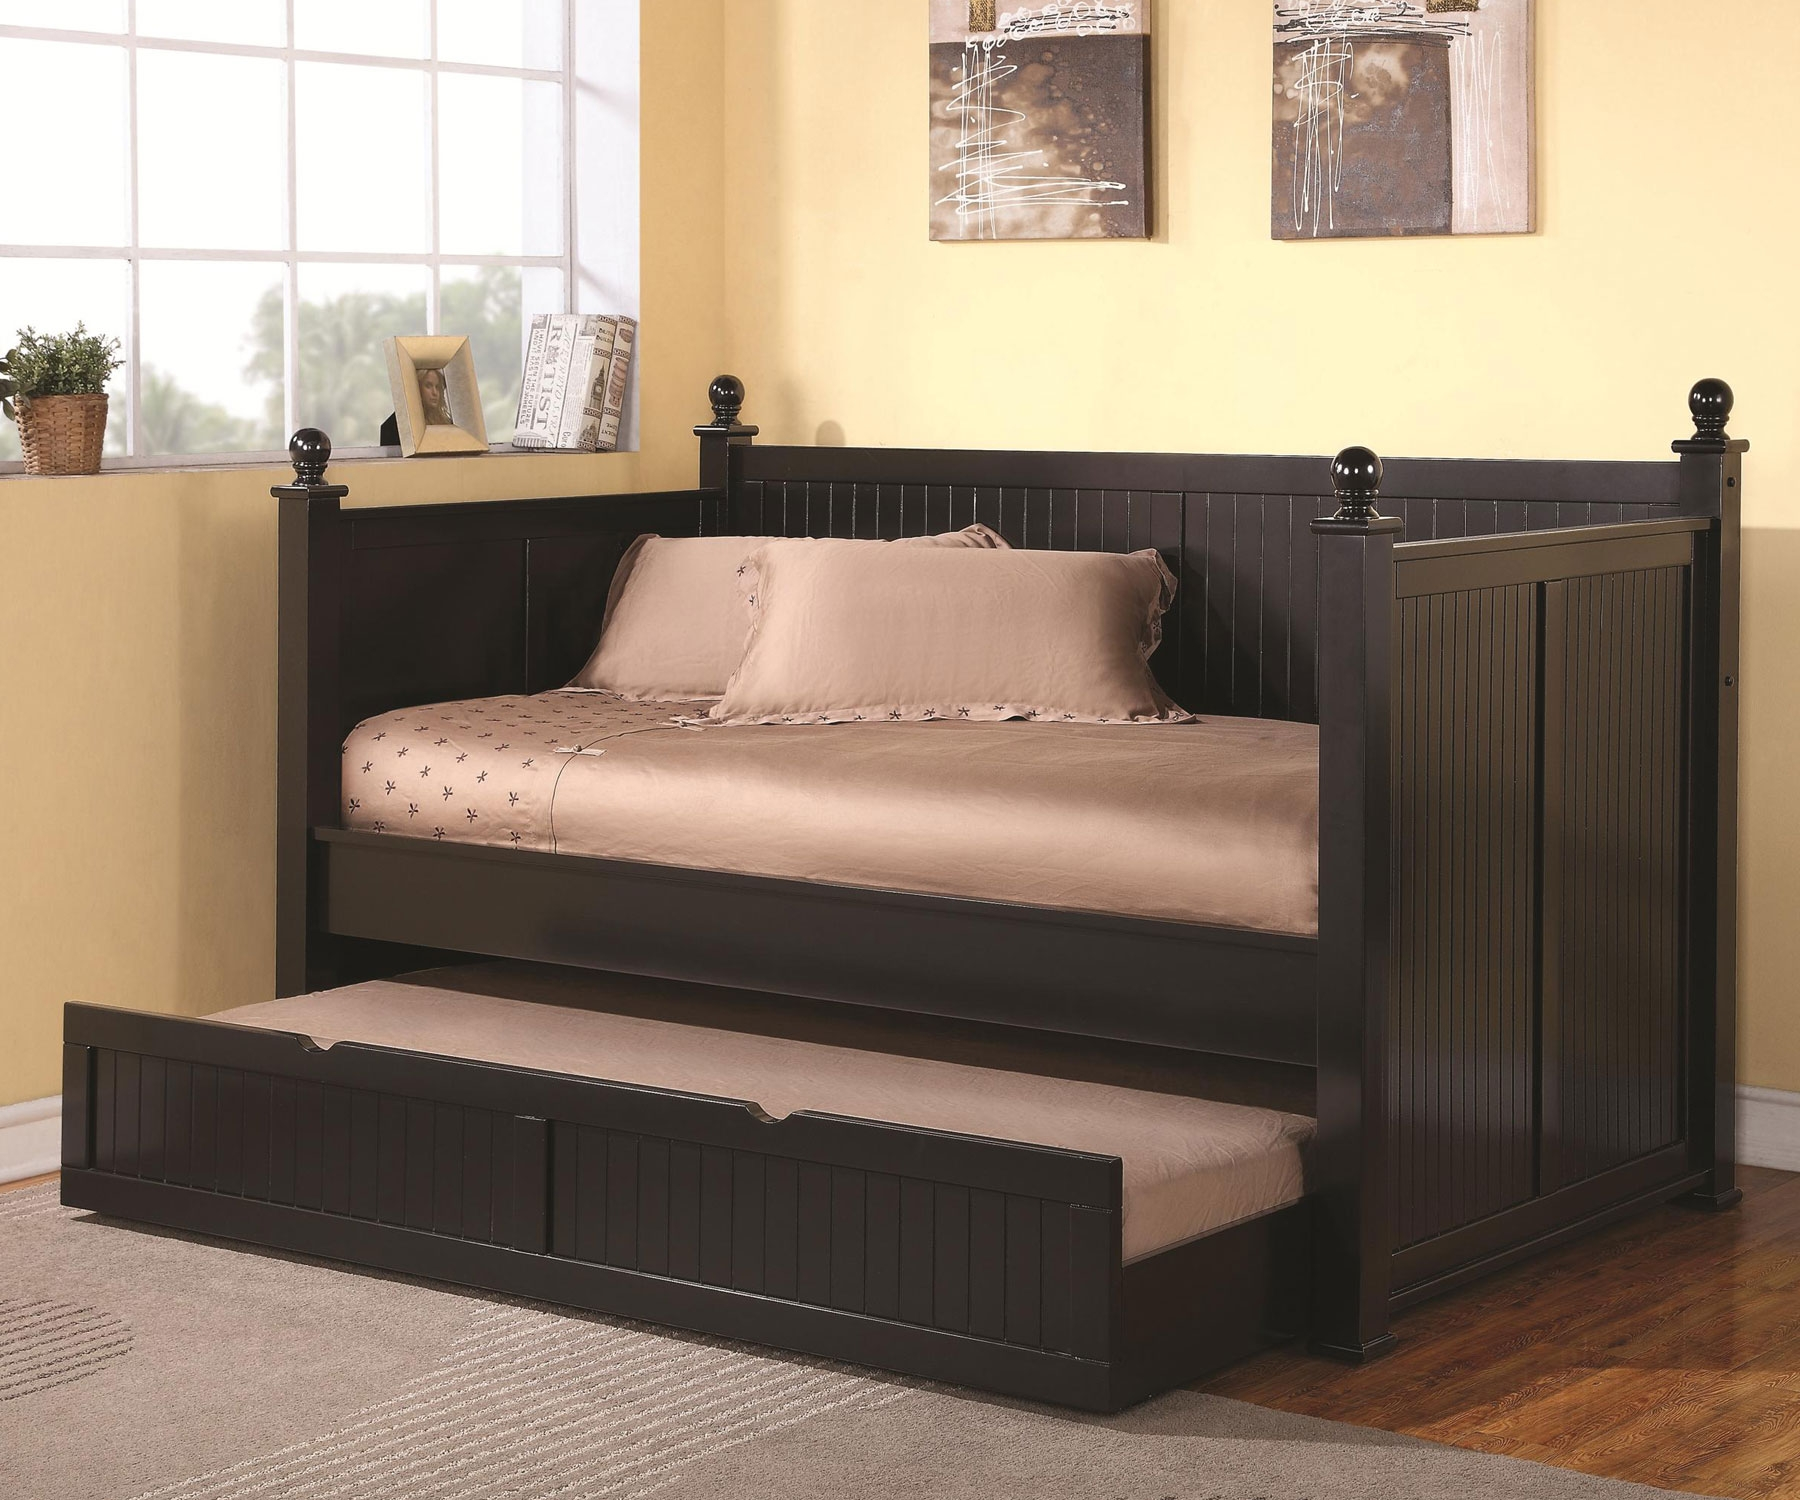 black wood daybed with additional trundle feature light grey rug floor wood floor system two abstract